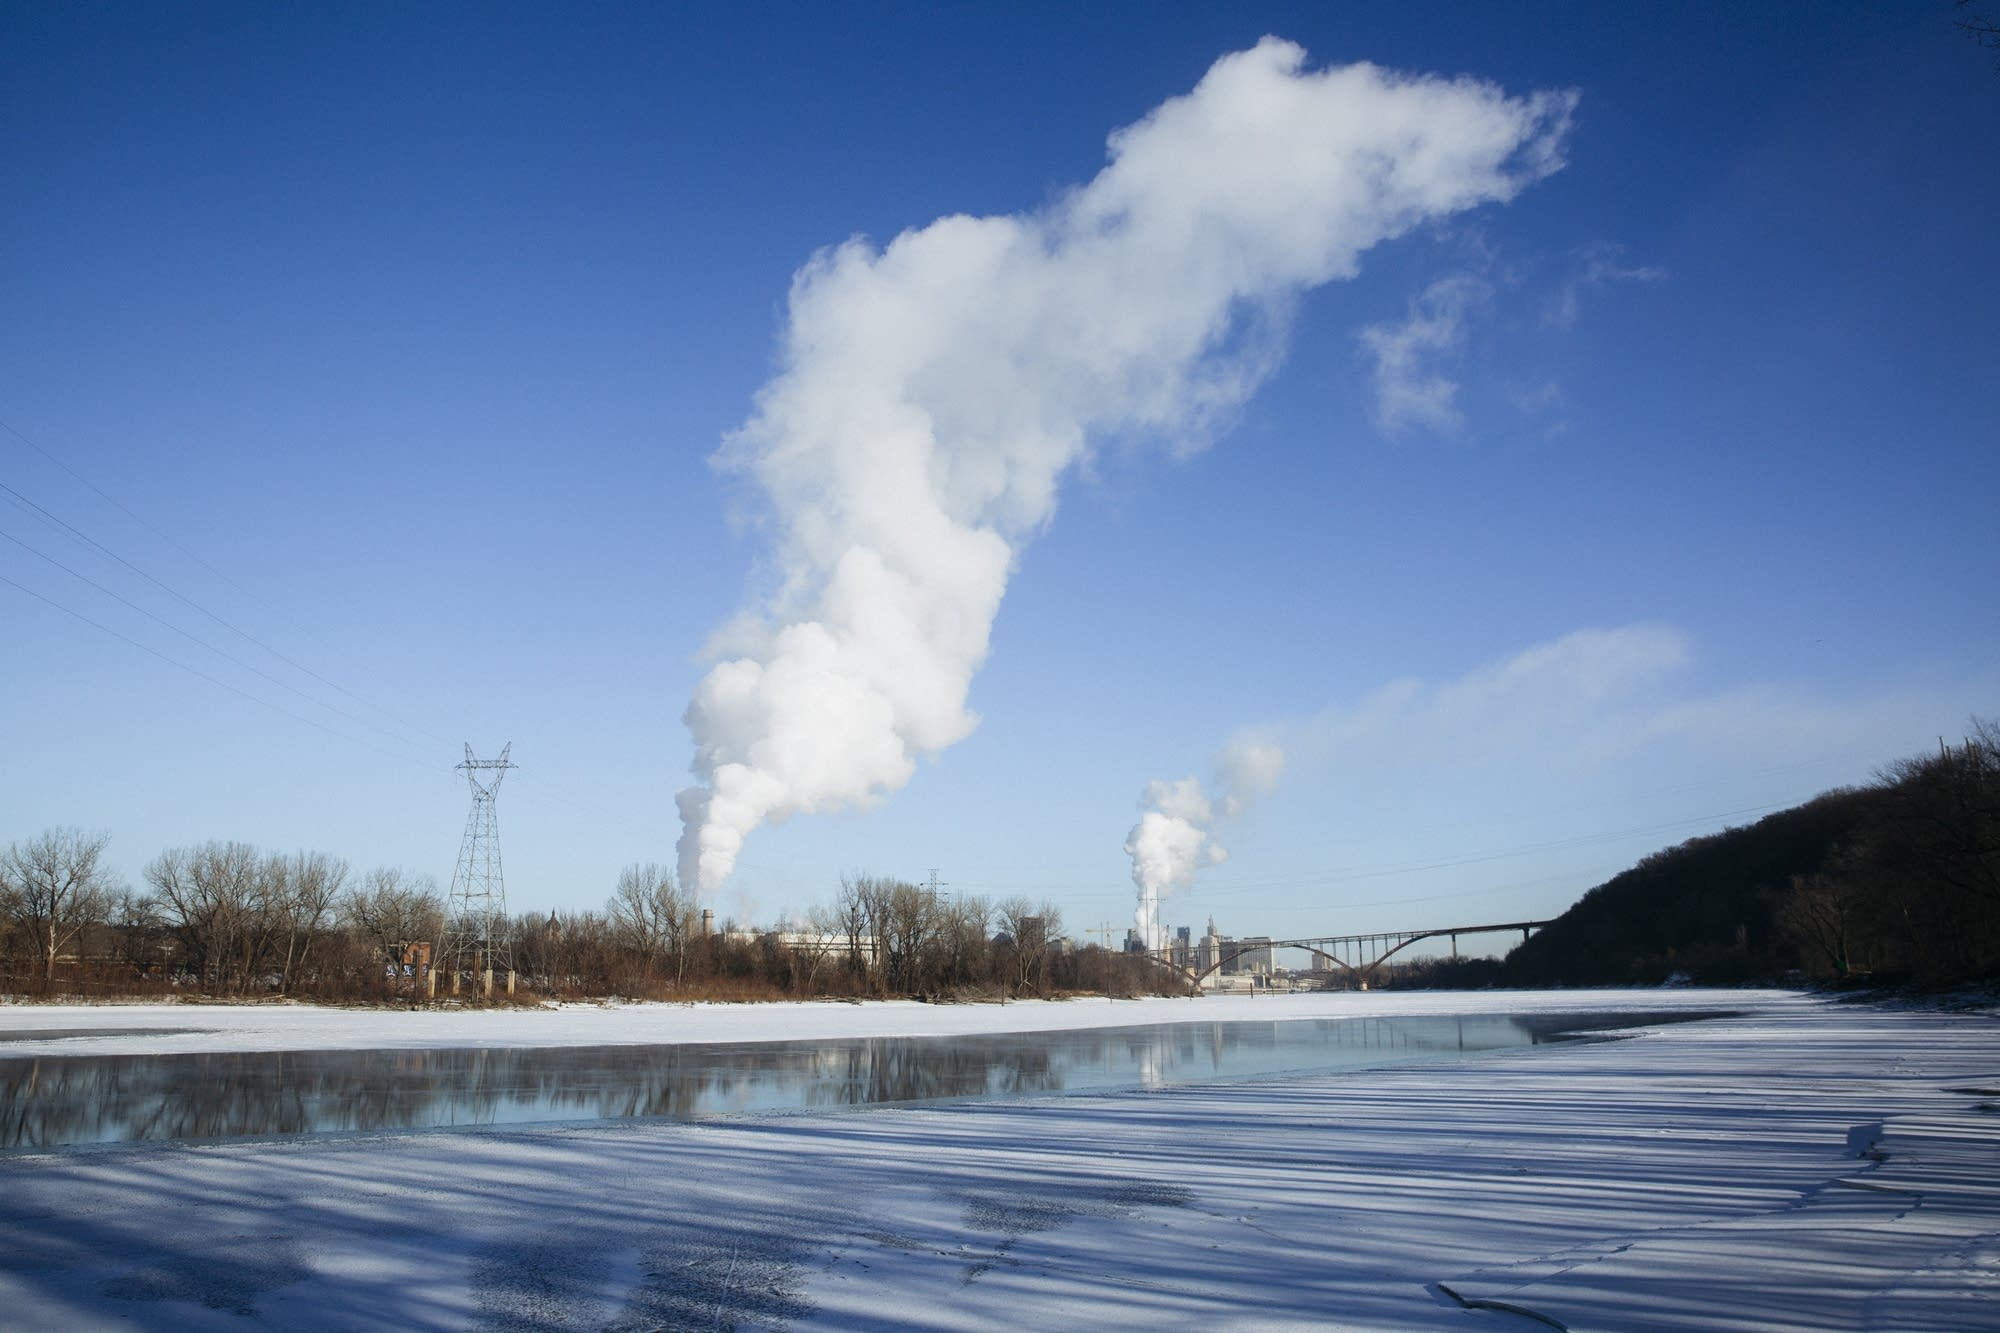 Plumes of vapor rise above the Mississippi River.